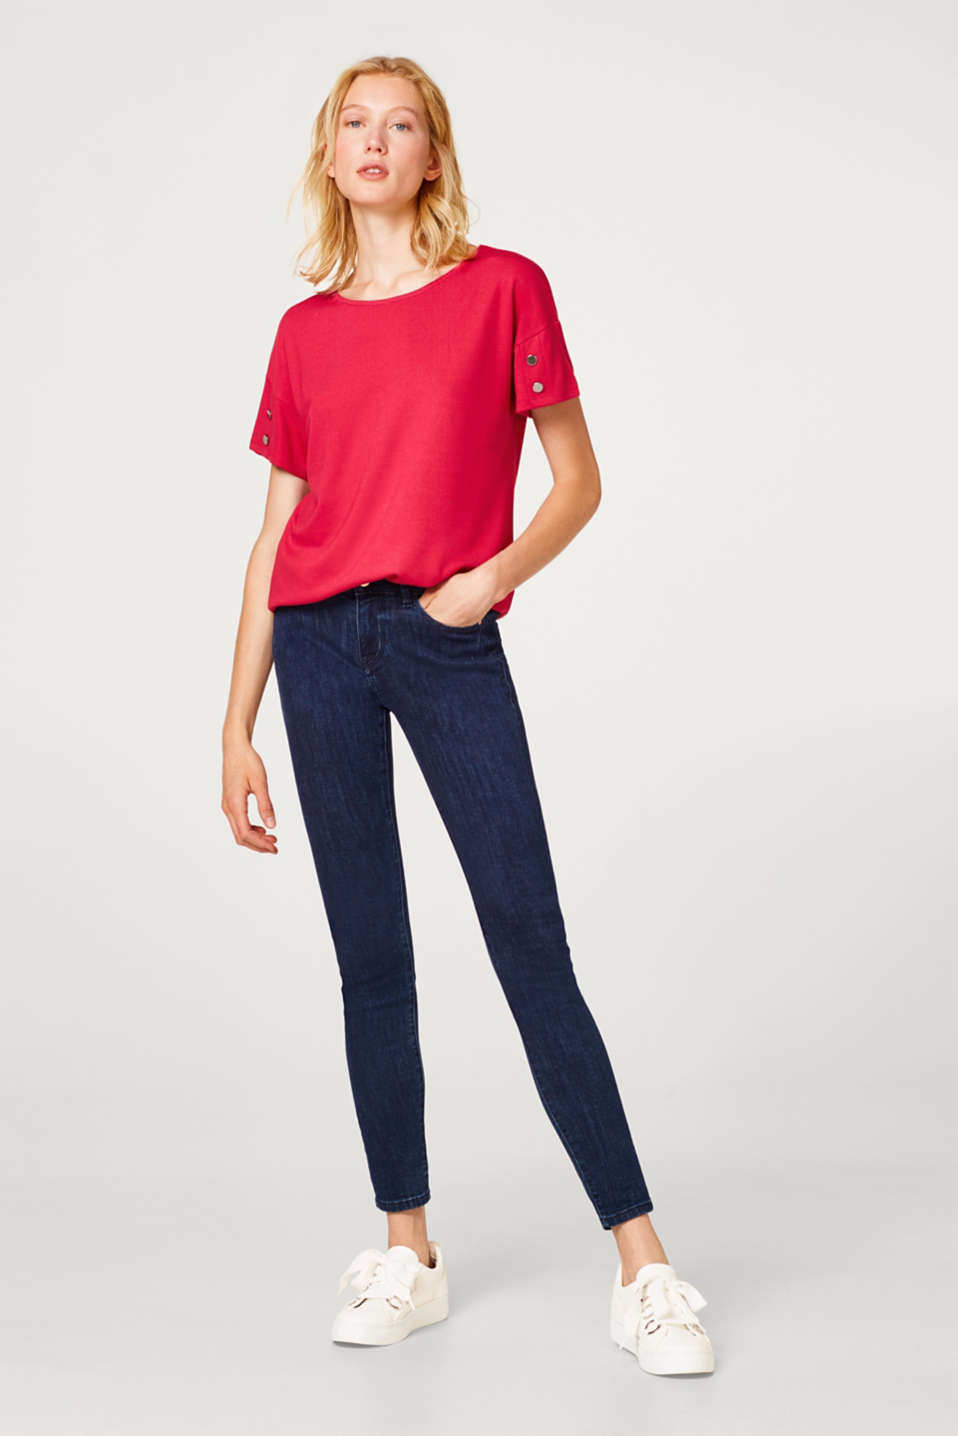 Stretch top with sleeve buttons